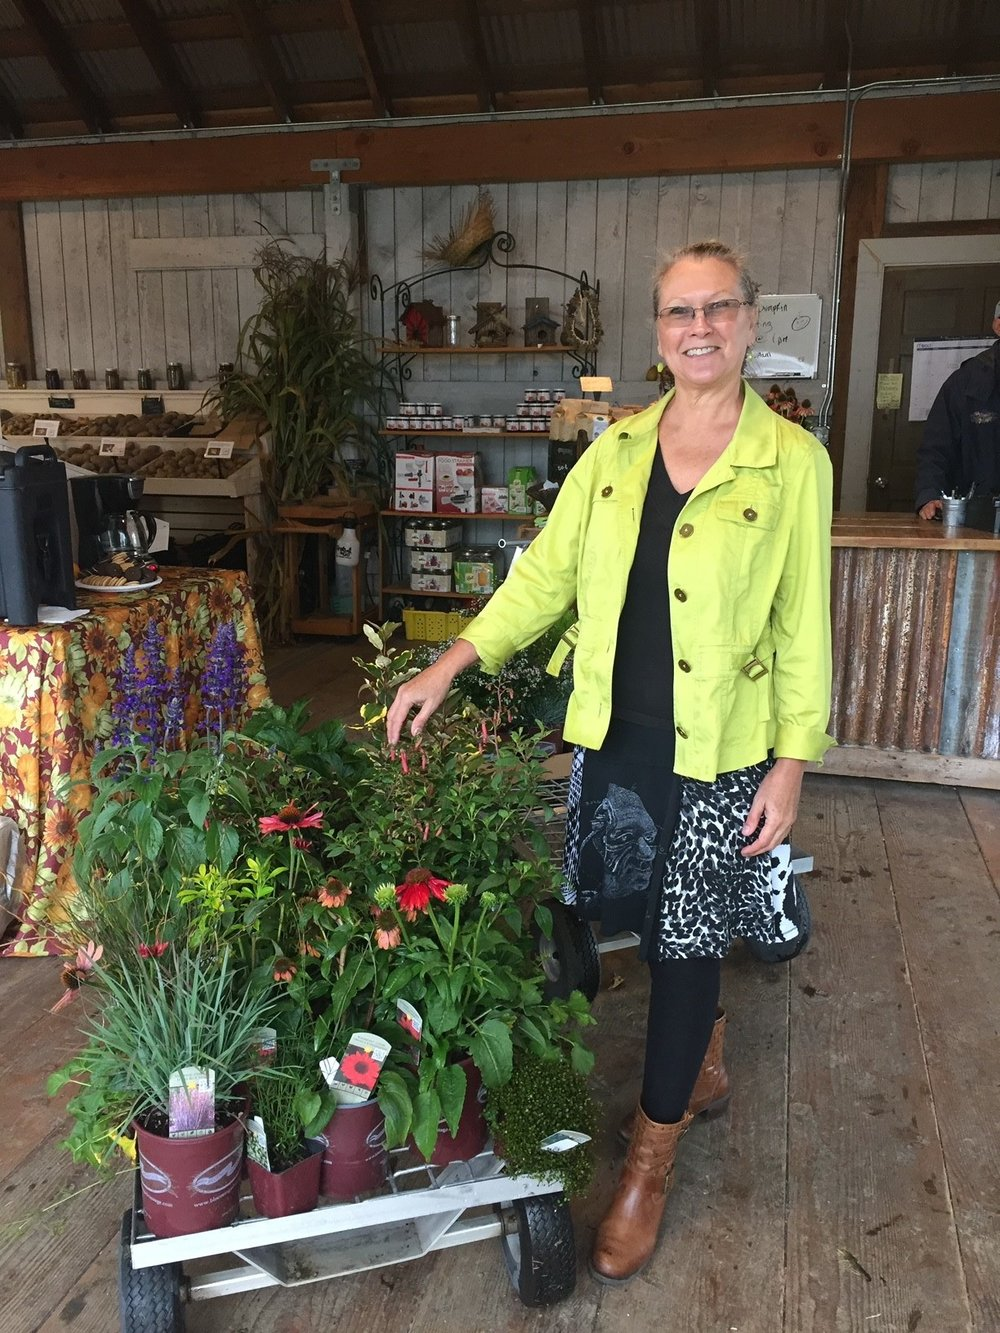 Meet Vicki - I live in Vancouver, Washington on nearly an acre of land where my studio is. In addition to my art I love gardening and spending time with my family.I'm a member of the Oregon Glass Guild and belong to many Facebook glass groups.